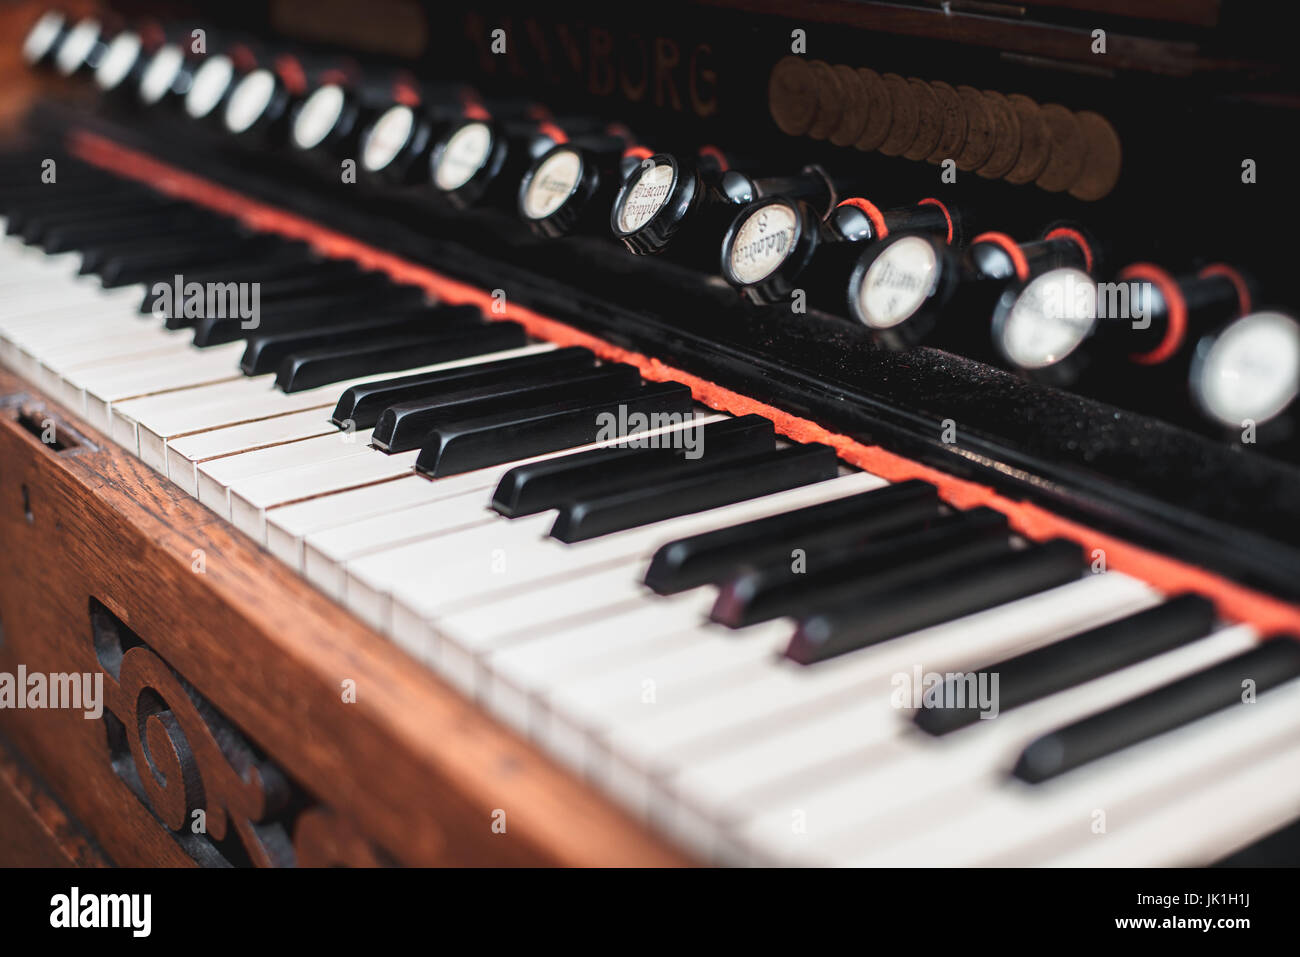 Harmonium Stock Photos & Harmonium Stock Images - Alamy